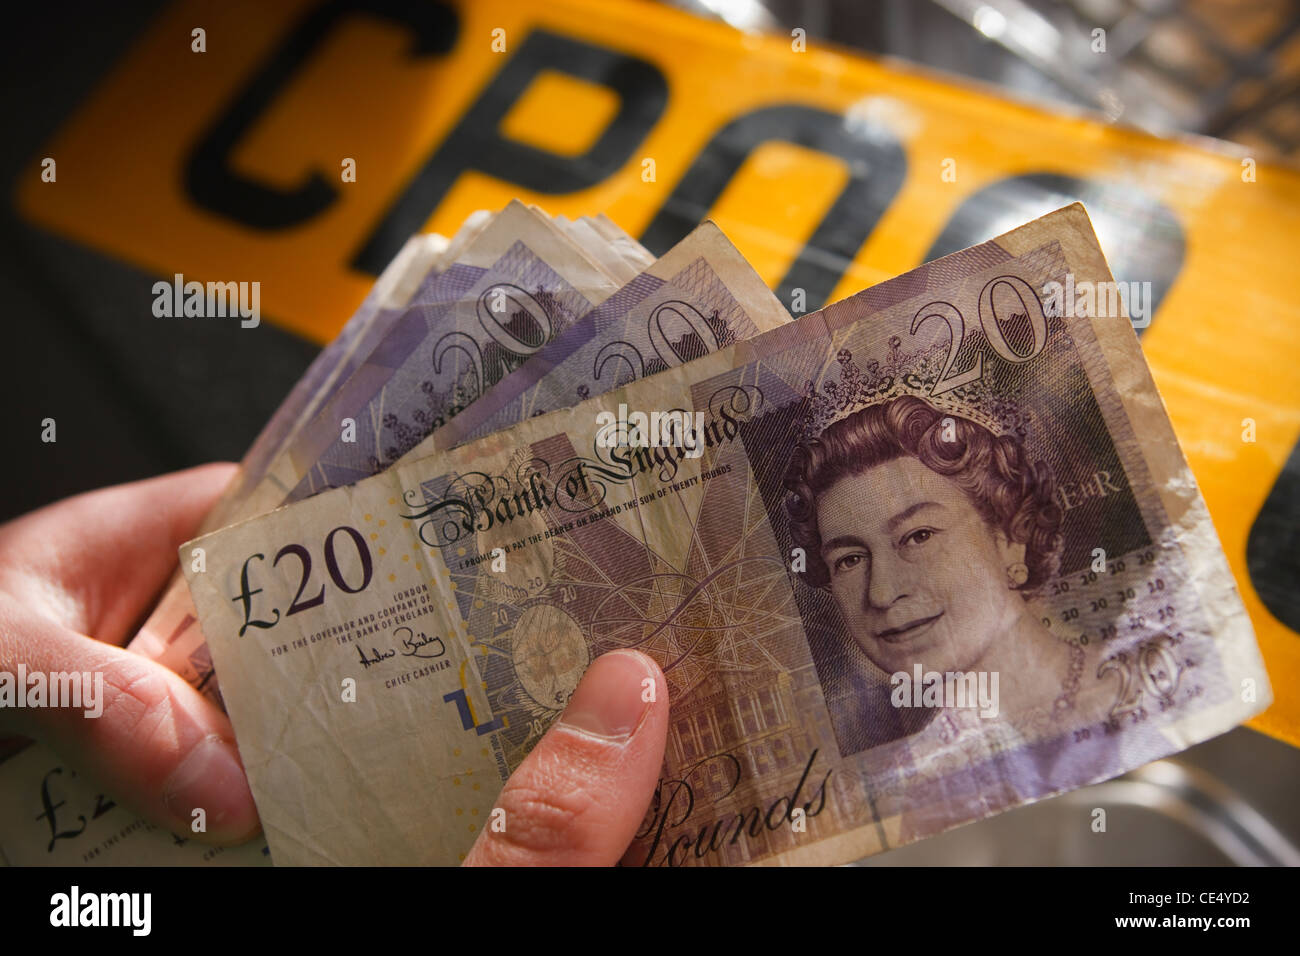 holding fan money £20 notes GBR sterling currency number plate - Stock Image